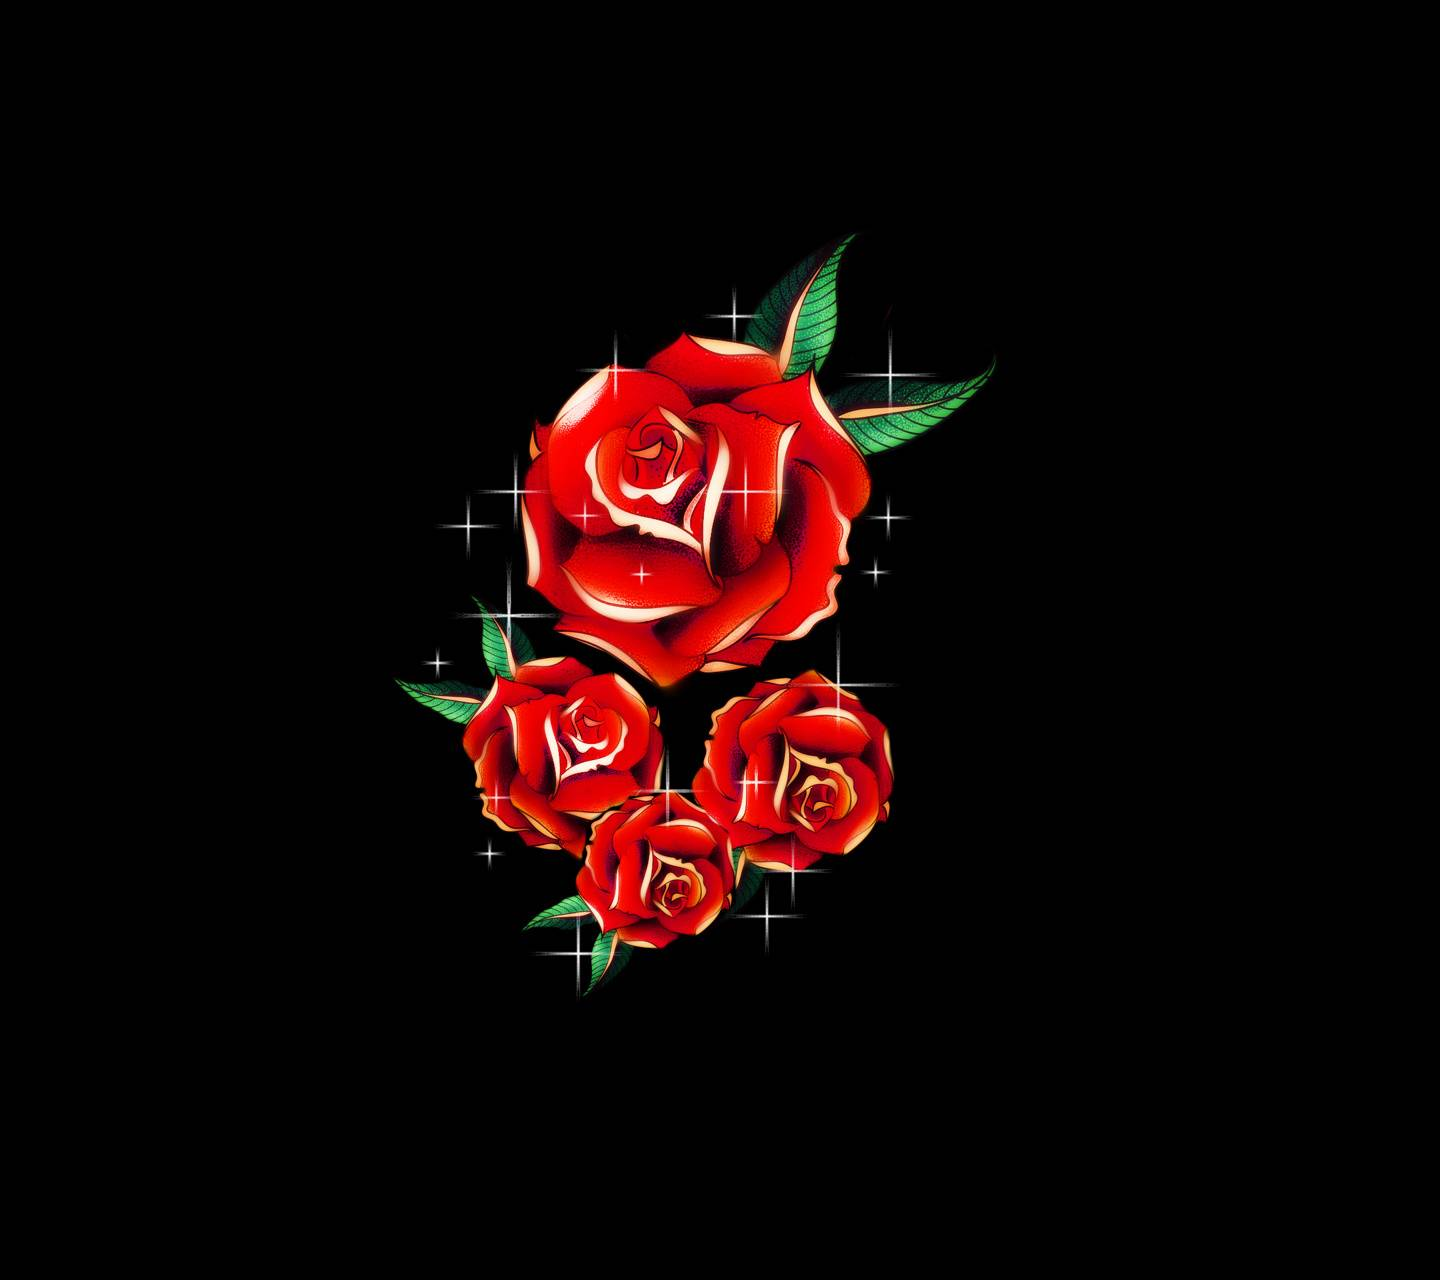 Some Roses 4